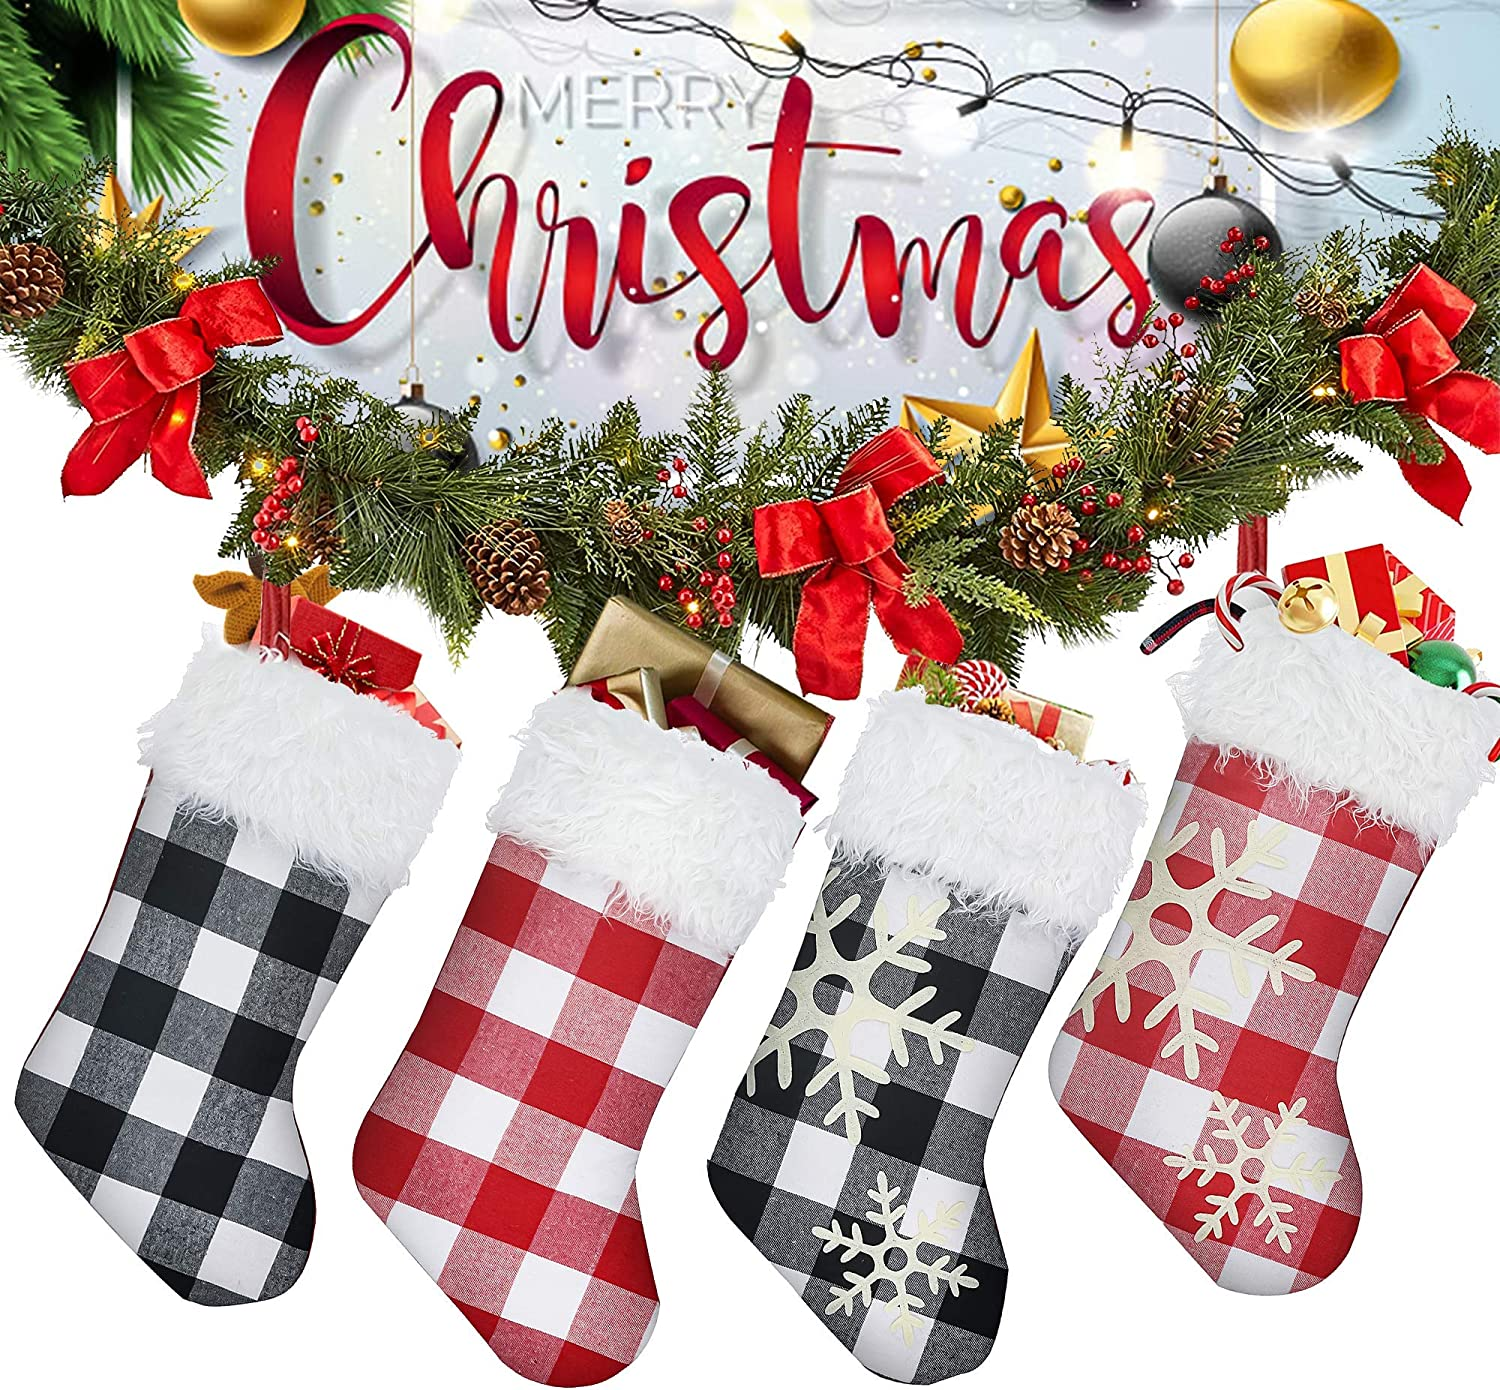 """CHIN FAI 18"""" Buffalo Plaid Christmas Stockings 4 Pack with Faux Fur Cuff Fireplace Hanging Stockings for Family Holiday Xmas Party (Black White, Red White)"""